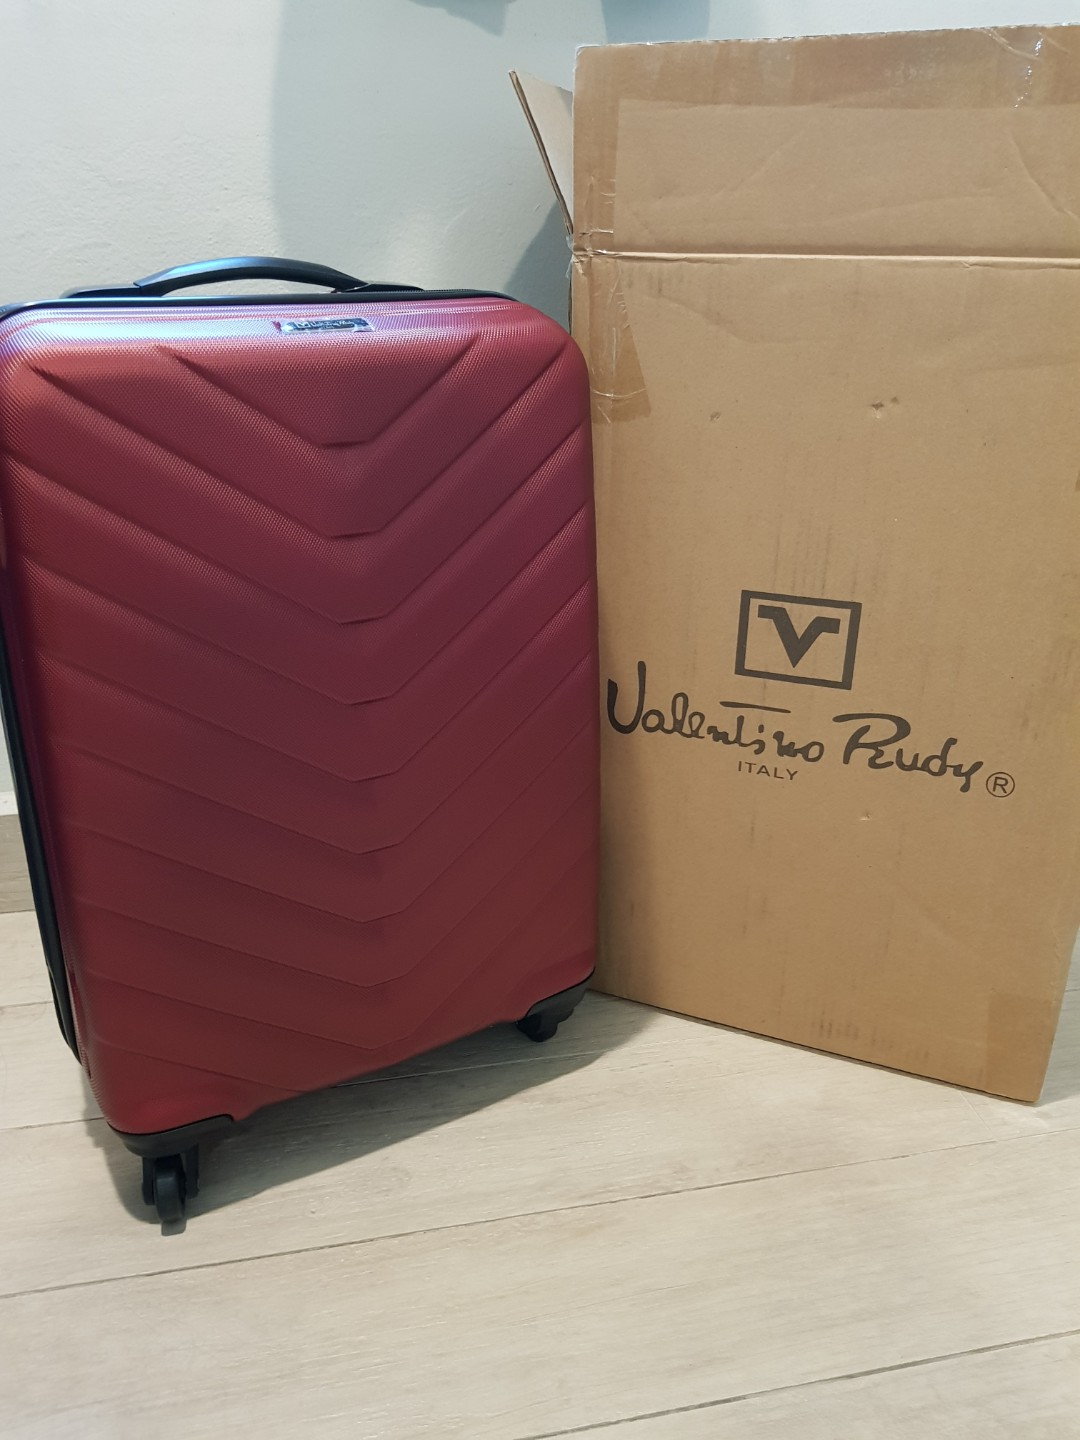 a7105a9d984 Valentino Rudy Luggage Trolley Bag, Travel, Travel Essentials, Luggage on  Carousell